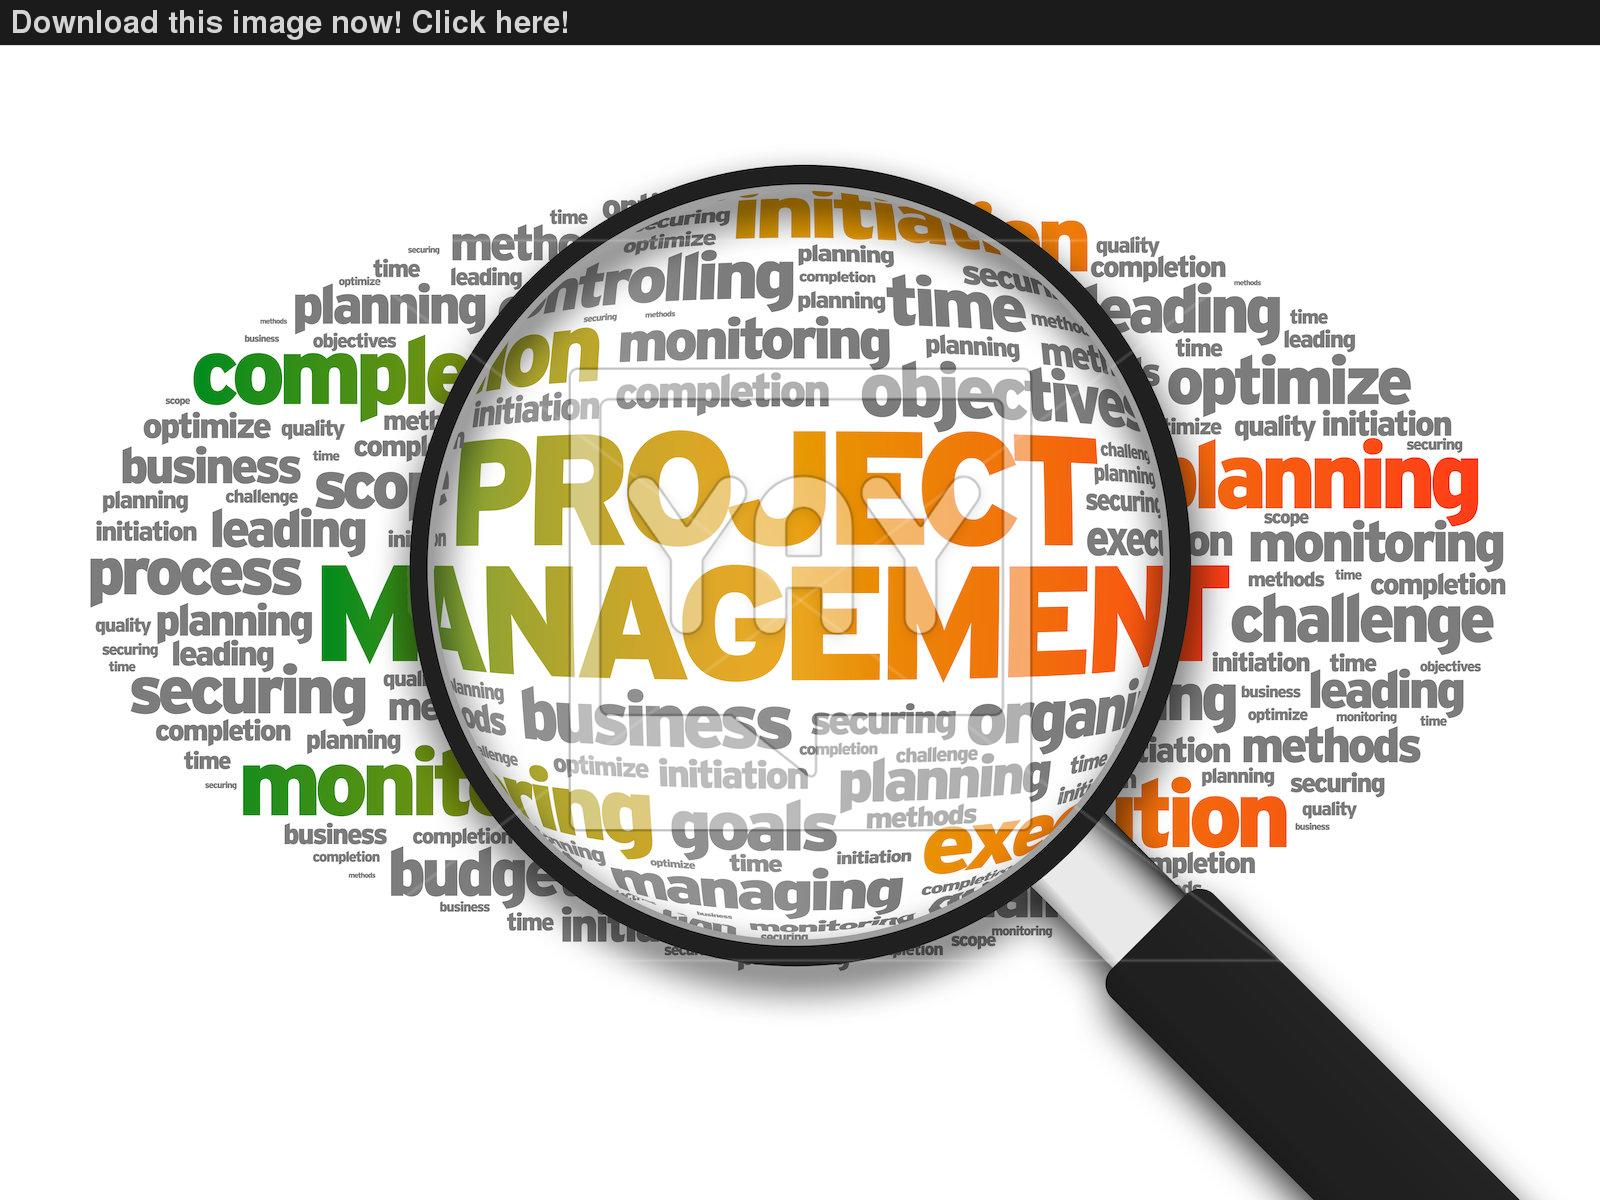 project management of a company This list of major project management companies includes the largest and most profitable project management businesses, corporations, agencies, vendors and firms in the world if you are wondering what the biggest project management companies are, then this list has you covered.